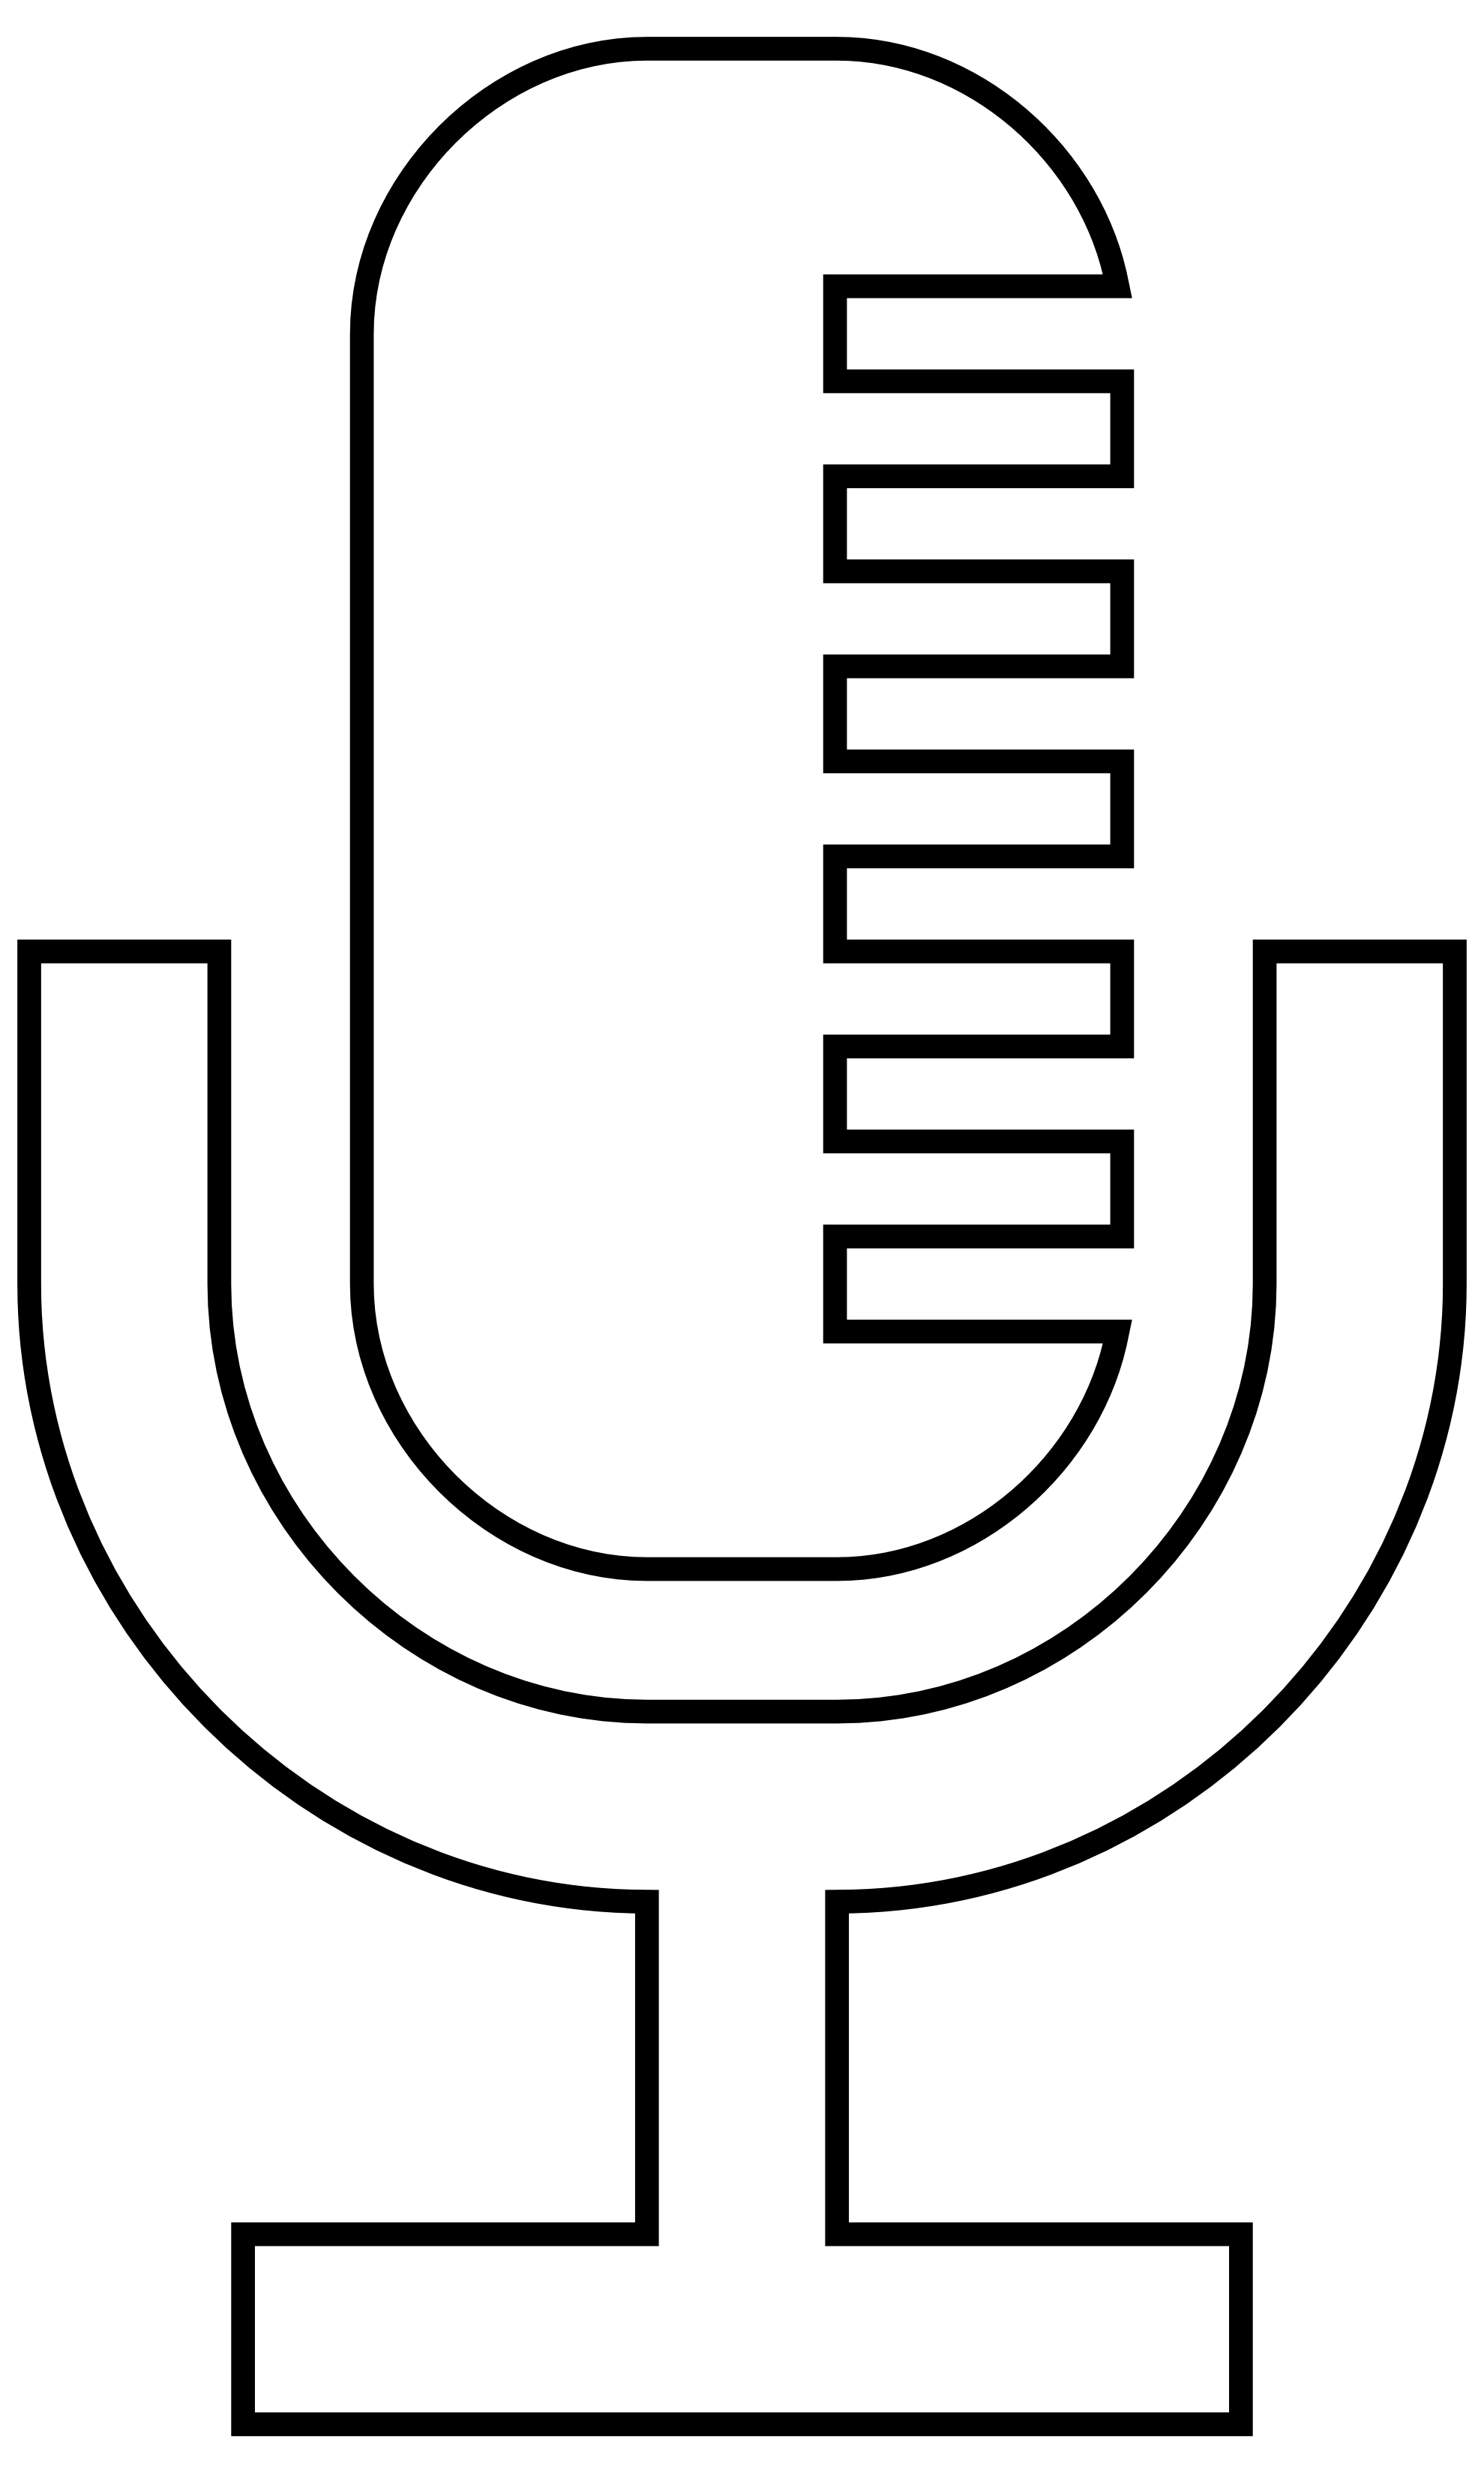 Line Art Microphone : Microphone clipart black and white panda free